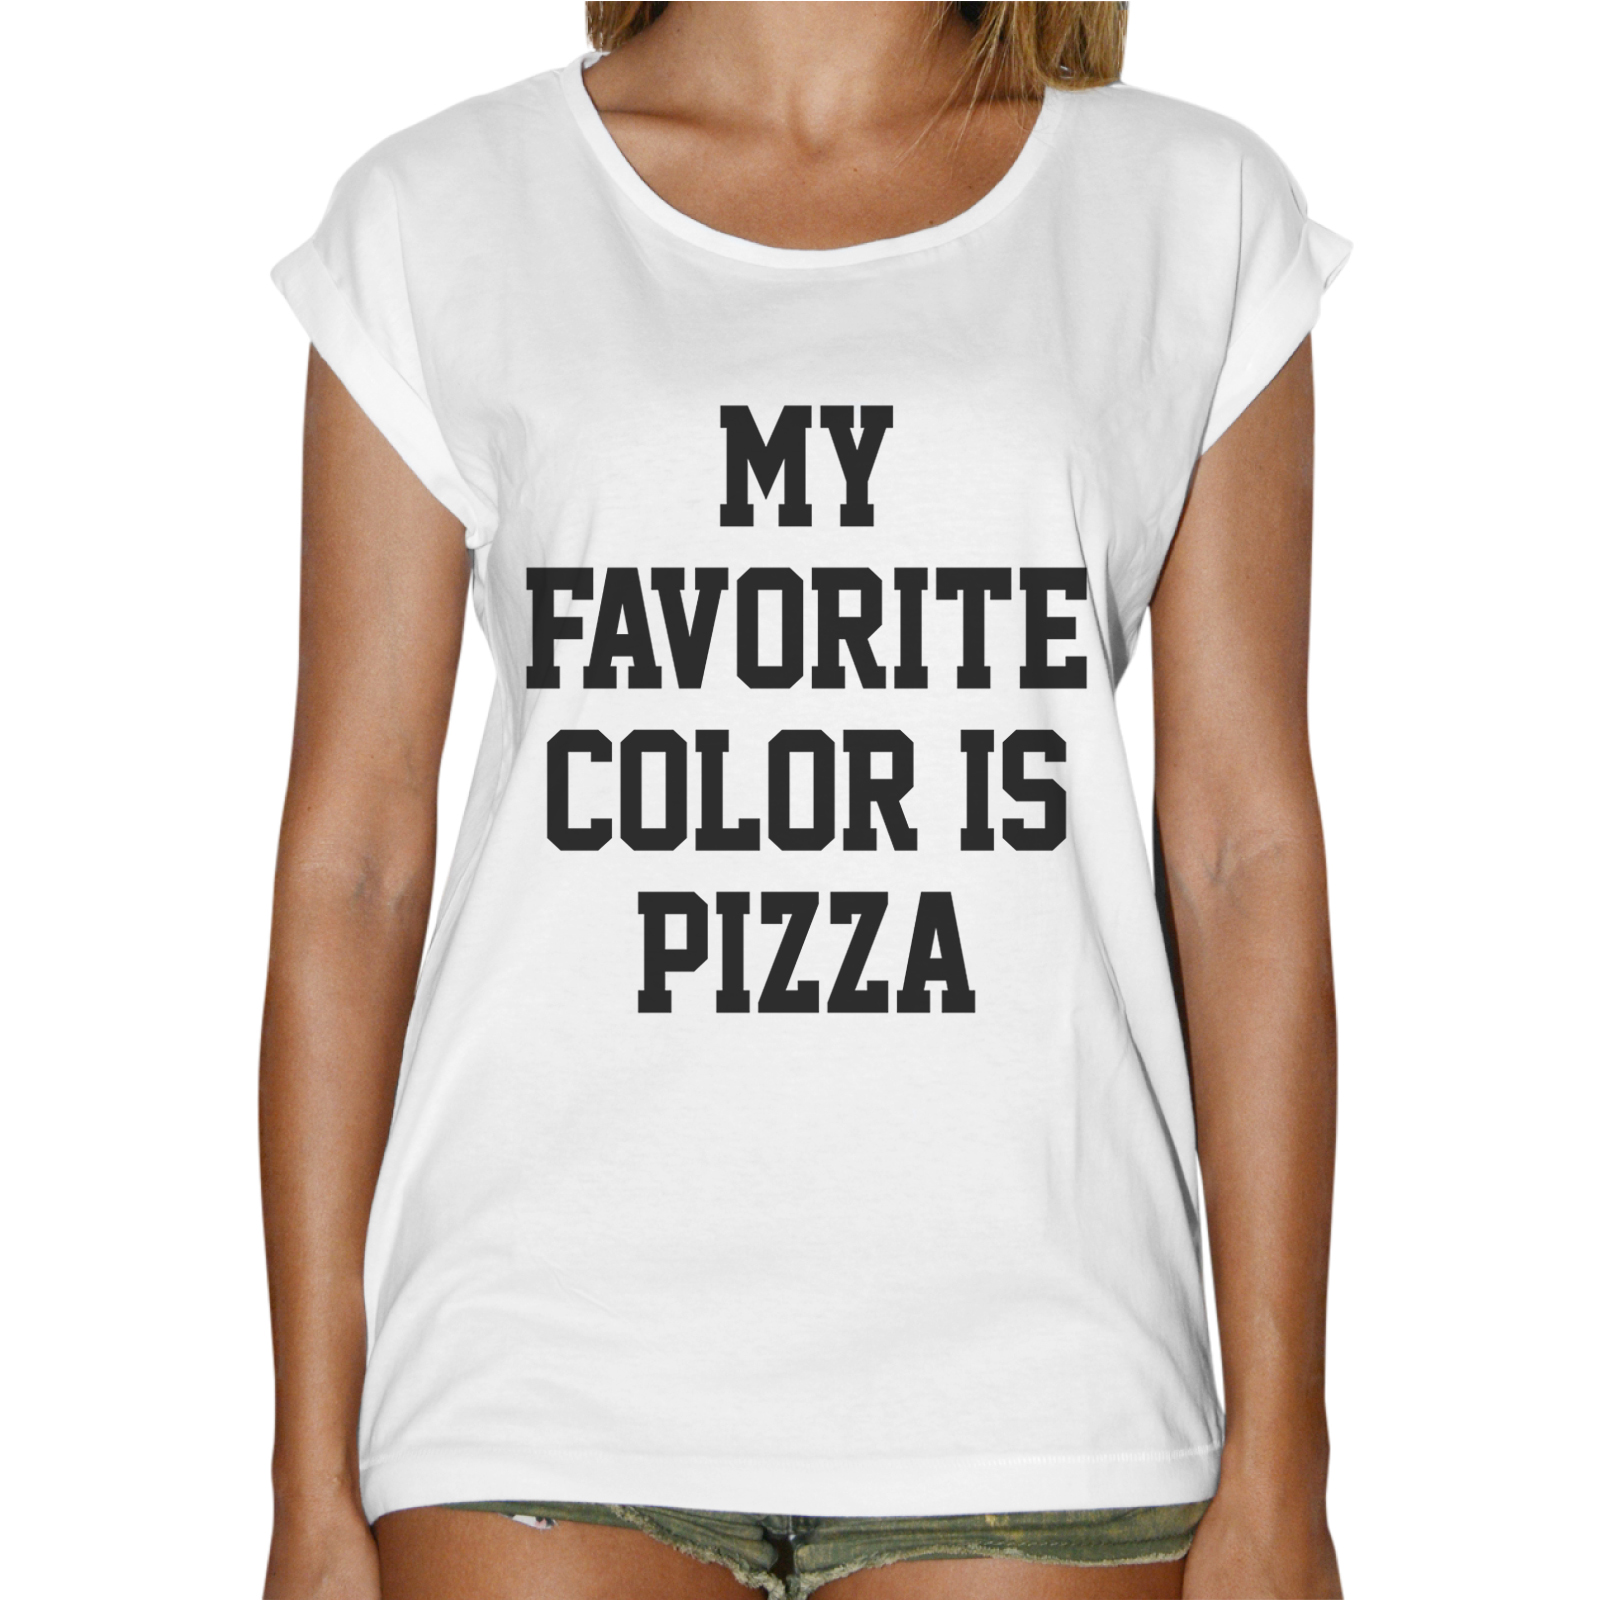 T-Shirt Donna Fashion COLOR PIZZA